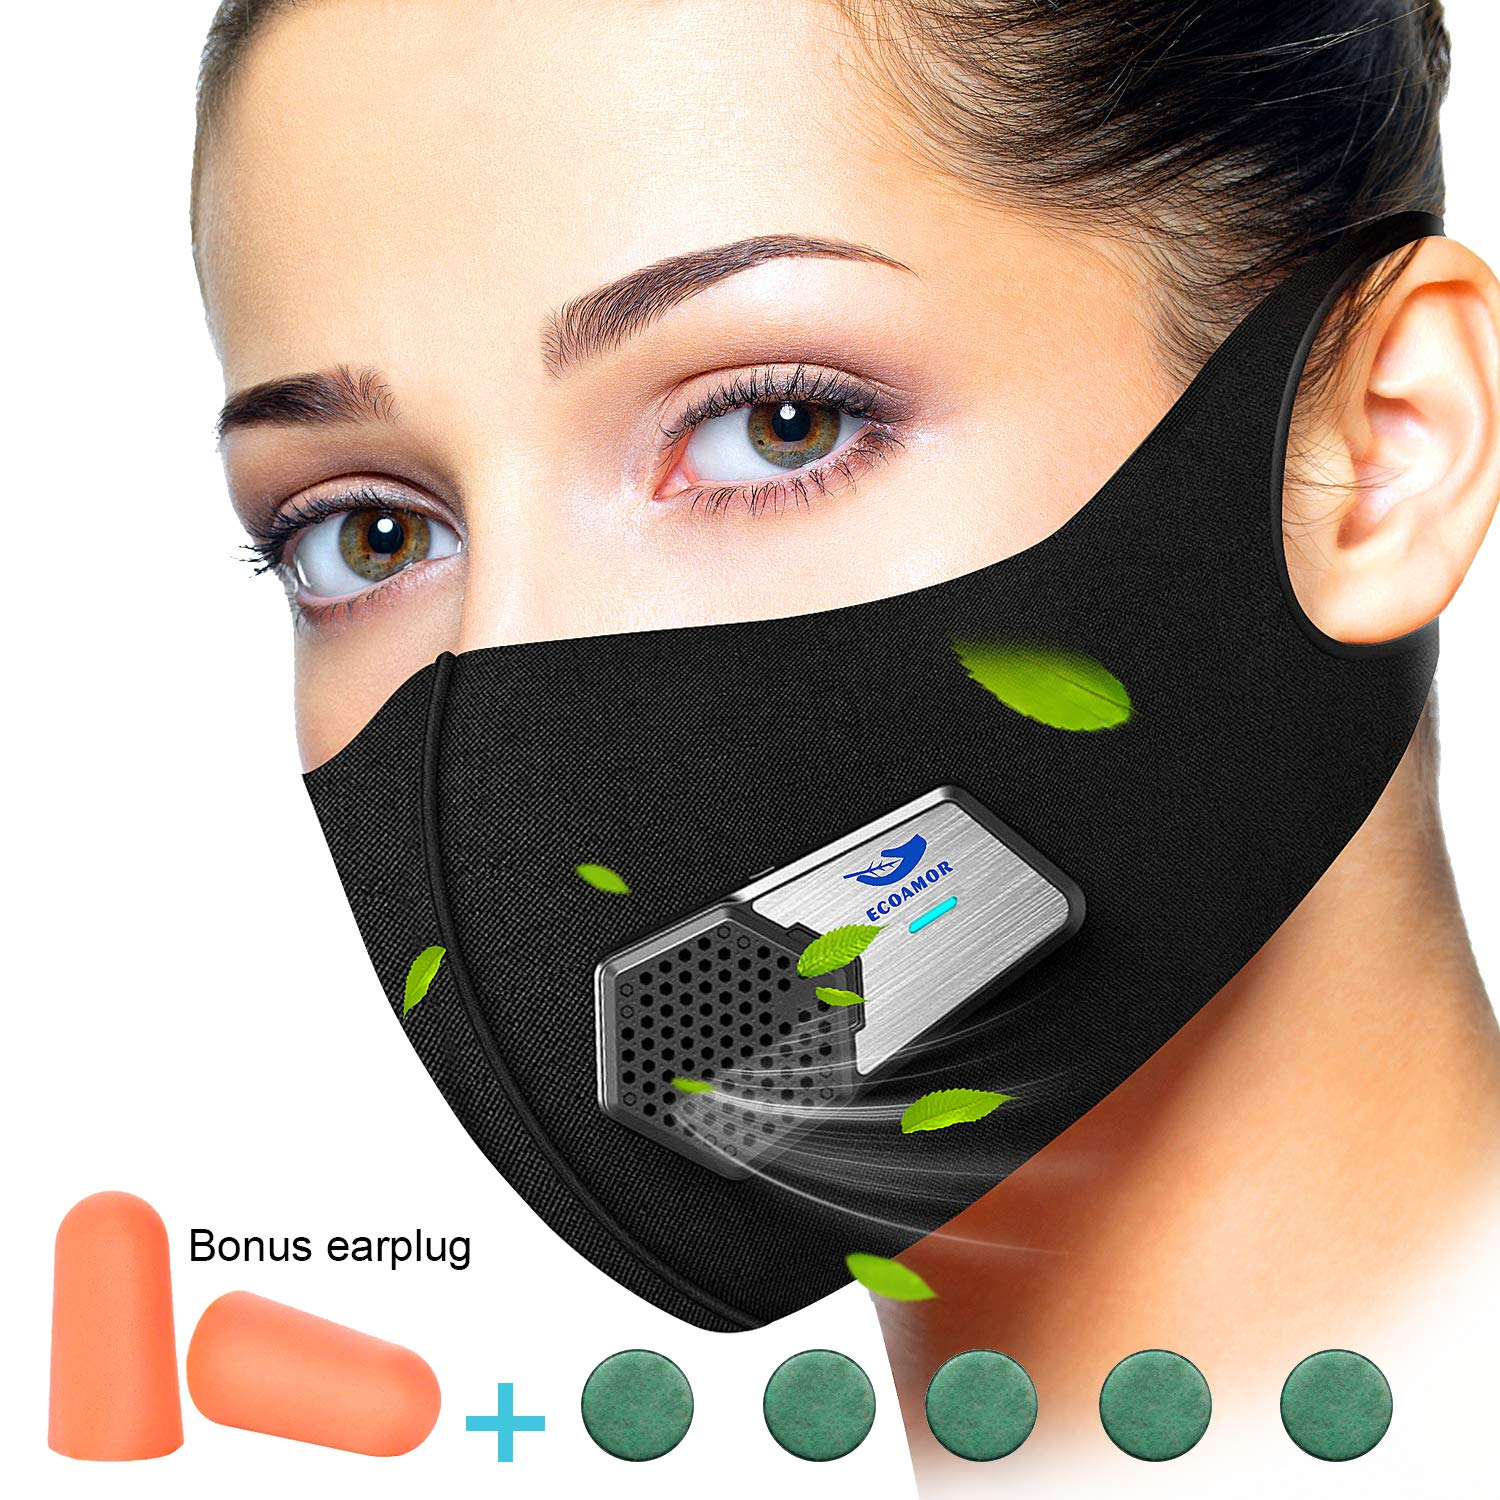 Anti Dust Electric Mask Reusable n95 Respirator for Face Air Purifying, ECOAMOR Washable Safety Masks for Outdoor Sports,Sanding,Gardening,TravelResist Dust,Germs,Allergies,PM2.5,Best Respirator Mask by ECOAMOR (Image #1)